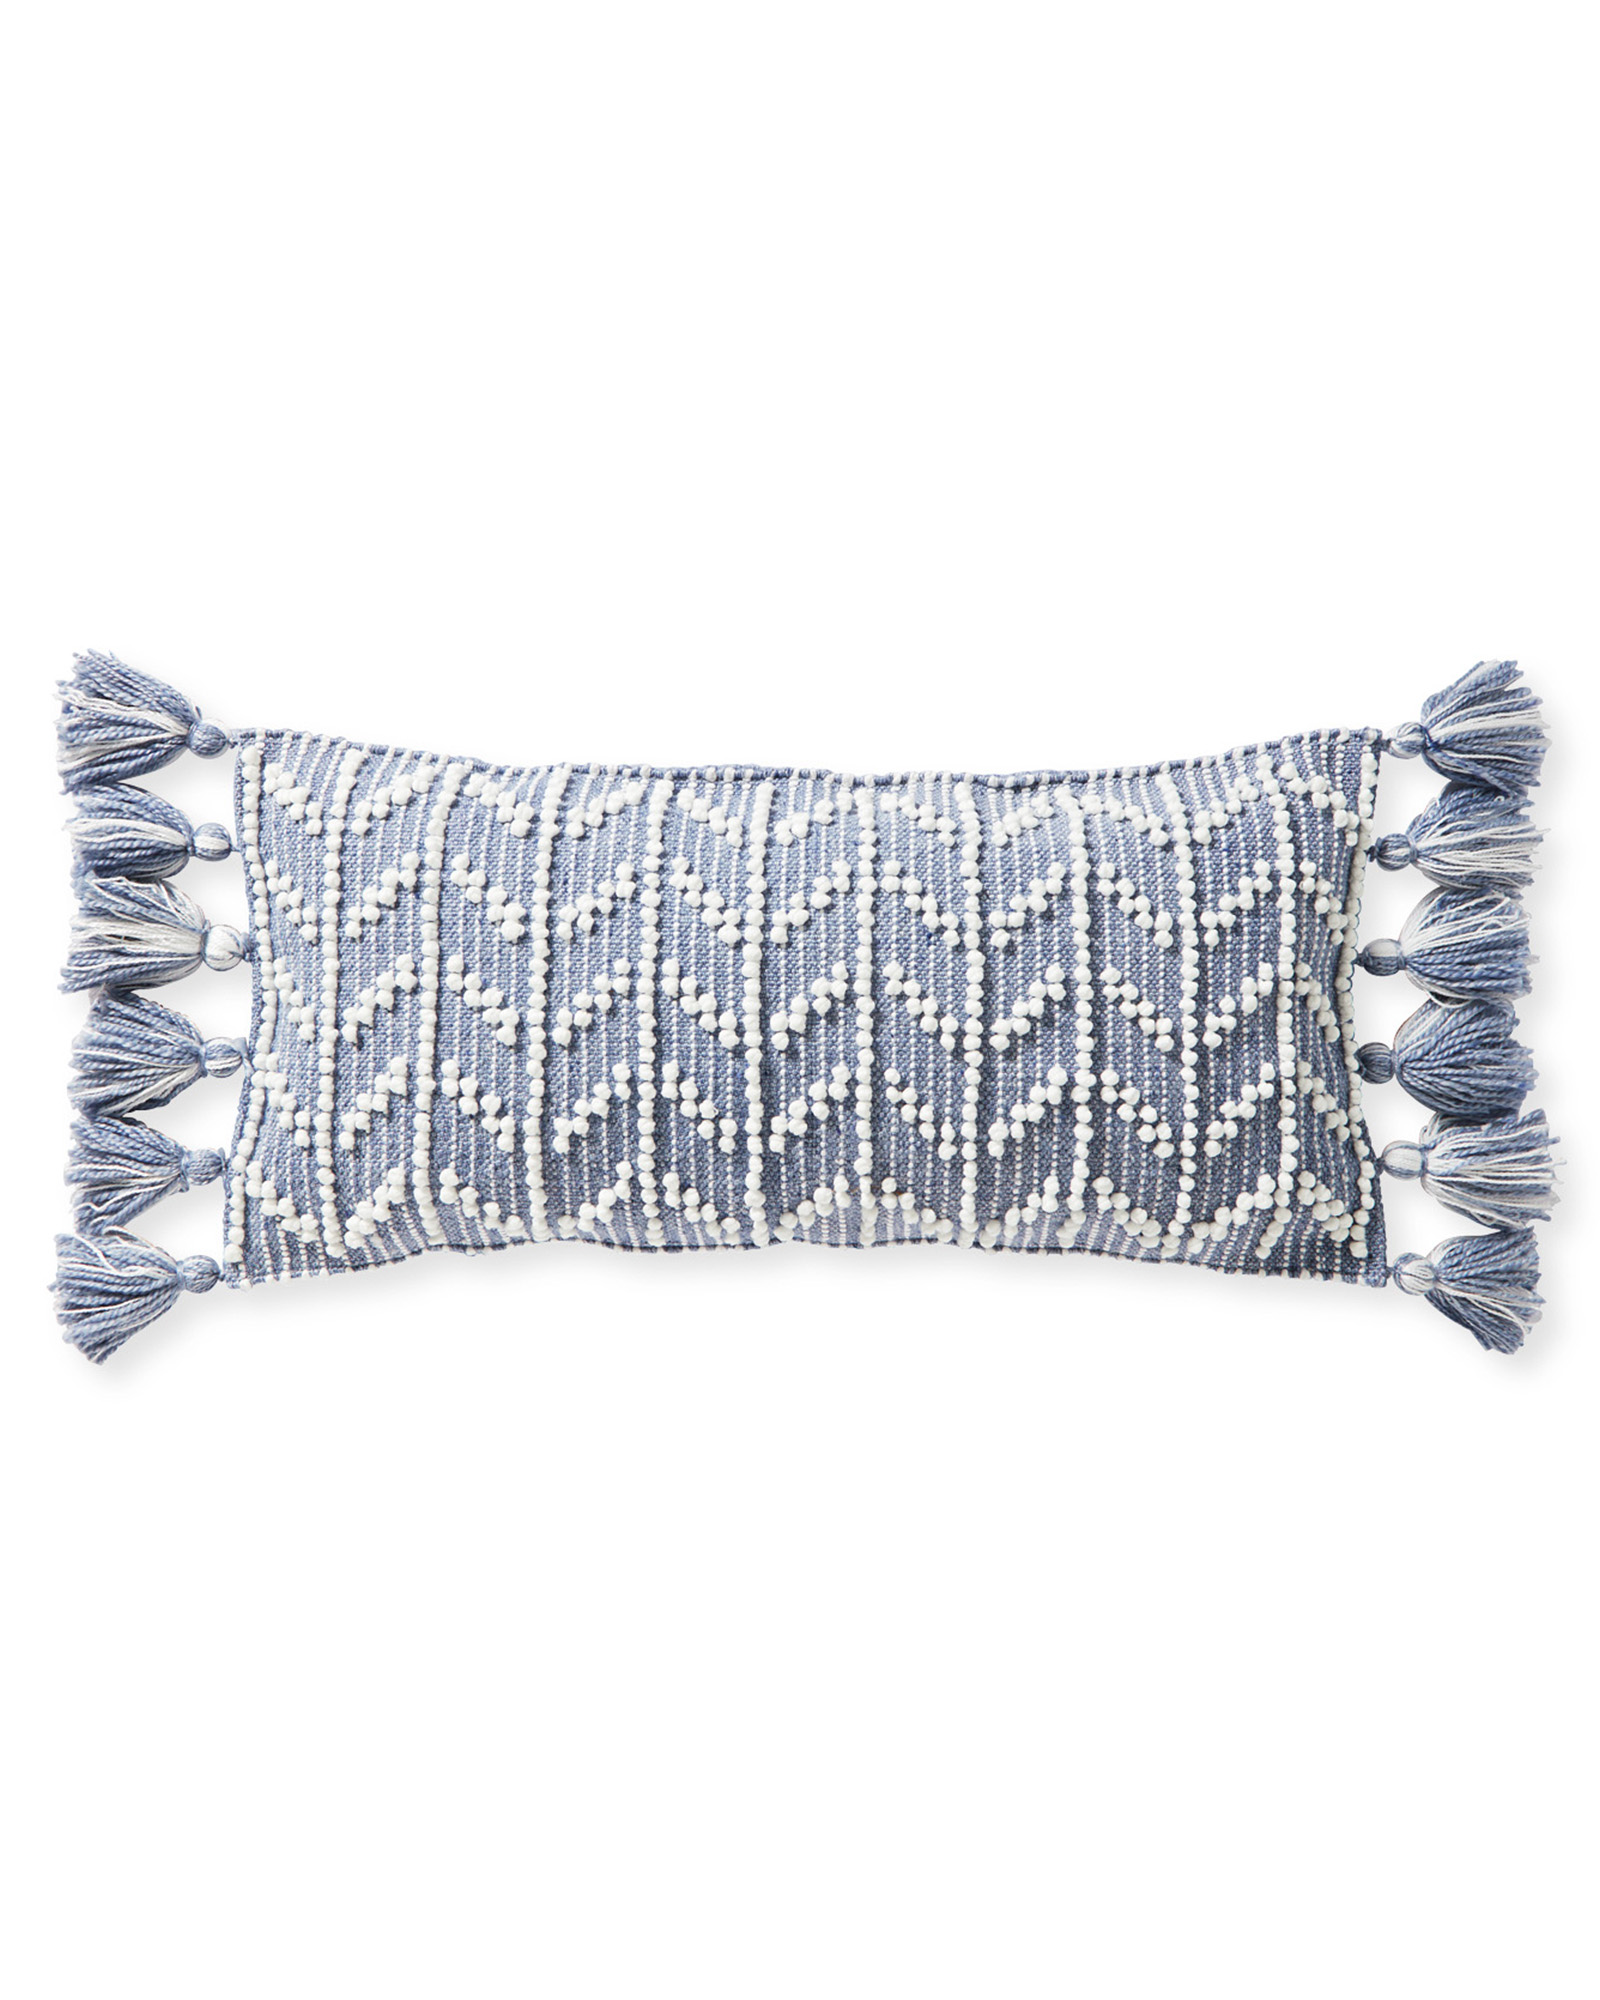 West Beach Pillow Cover, Heathered Coastal Blue